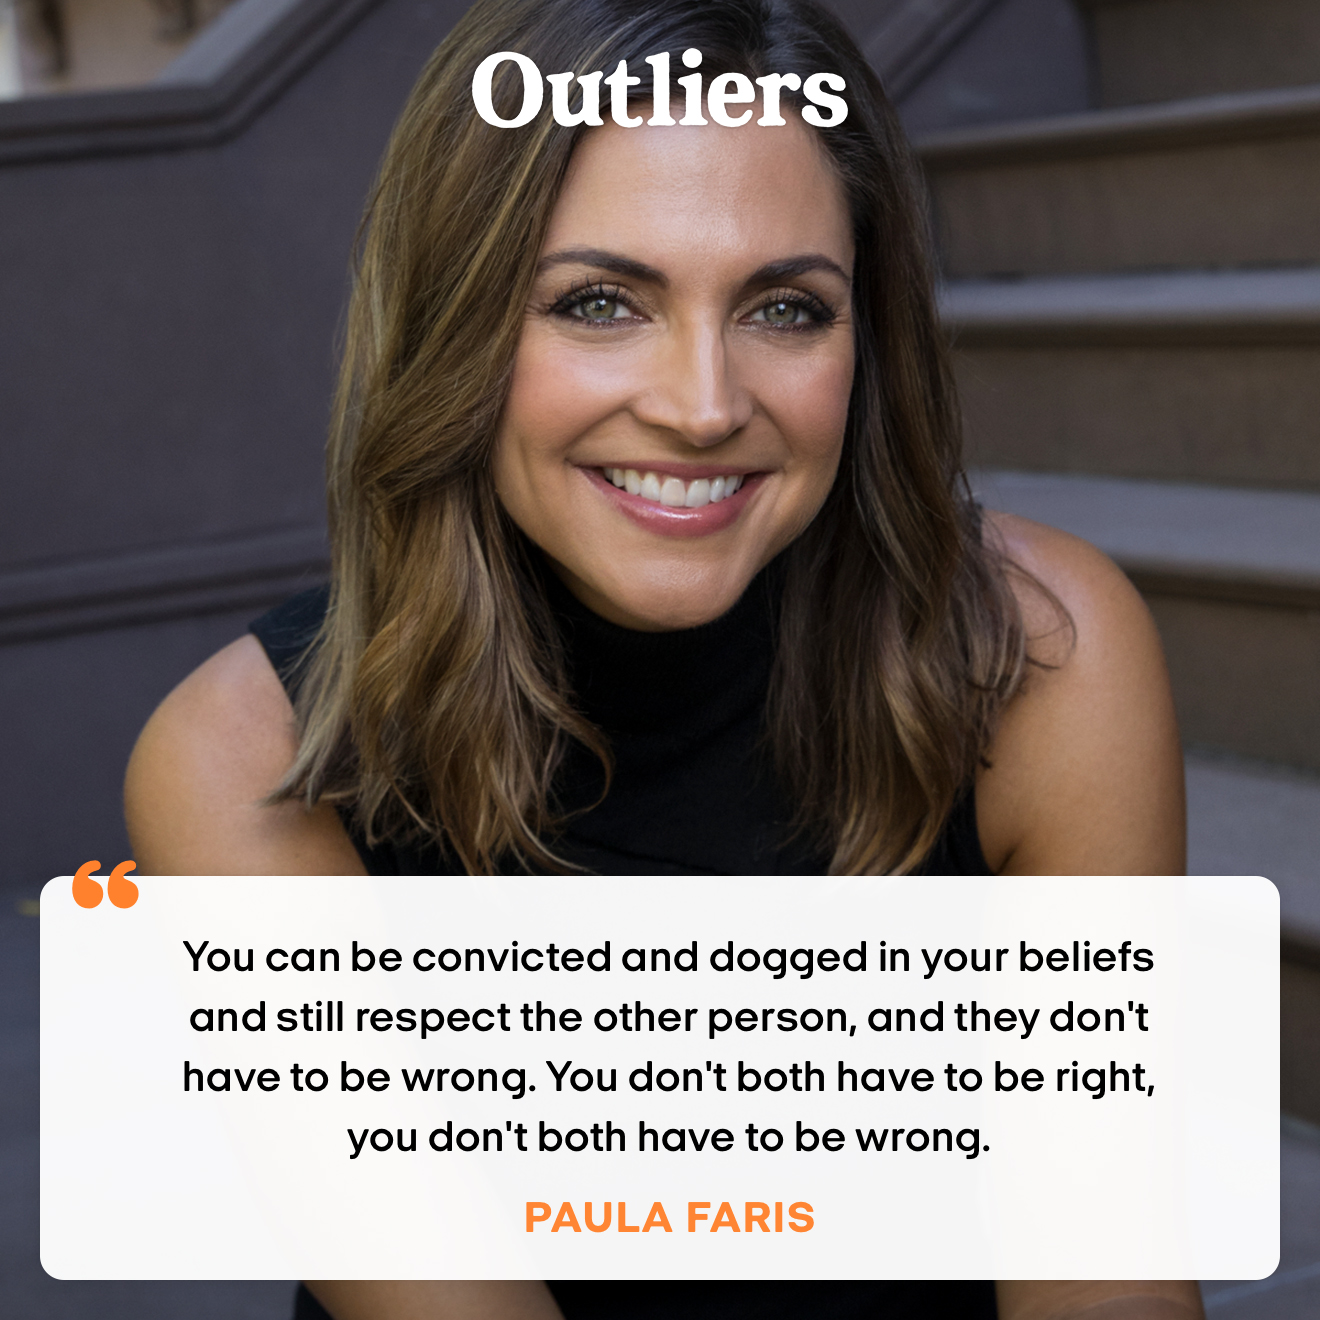 """""""You can be convicted and dogged in your beliefs and still respect the other person. They don't have to be wrong. You don't have to be right. You both don't have to be wrong."""" – Paula Faris"""